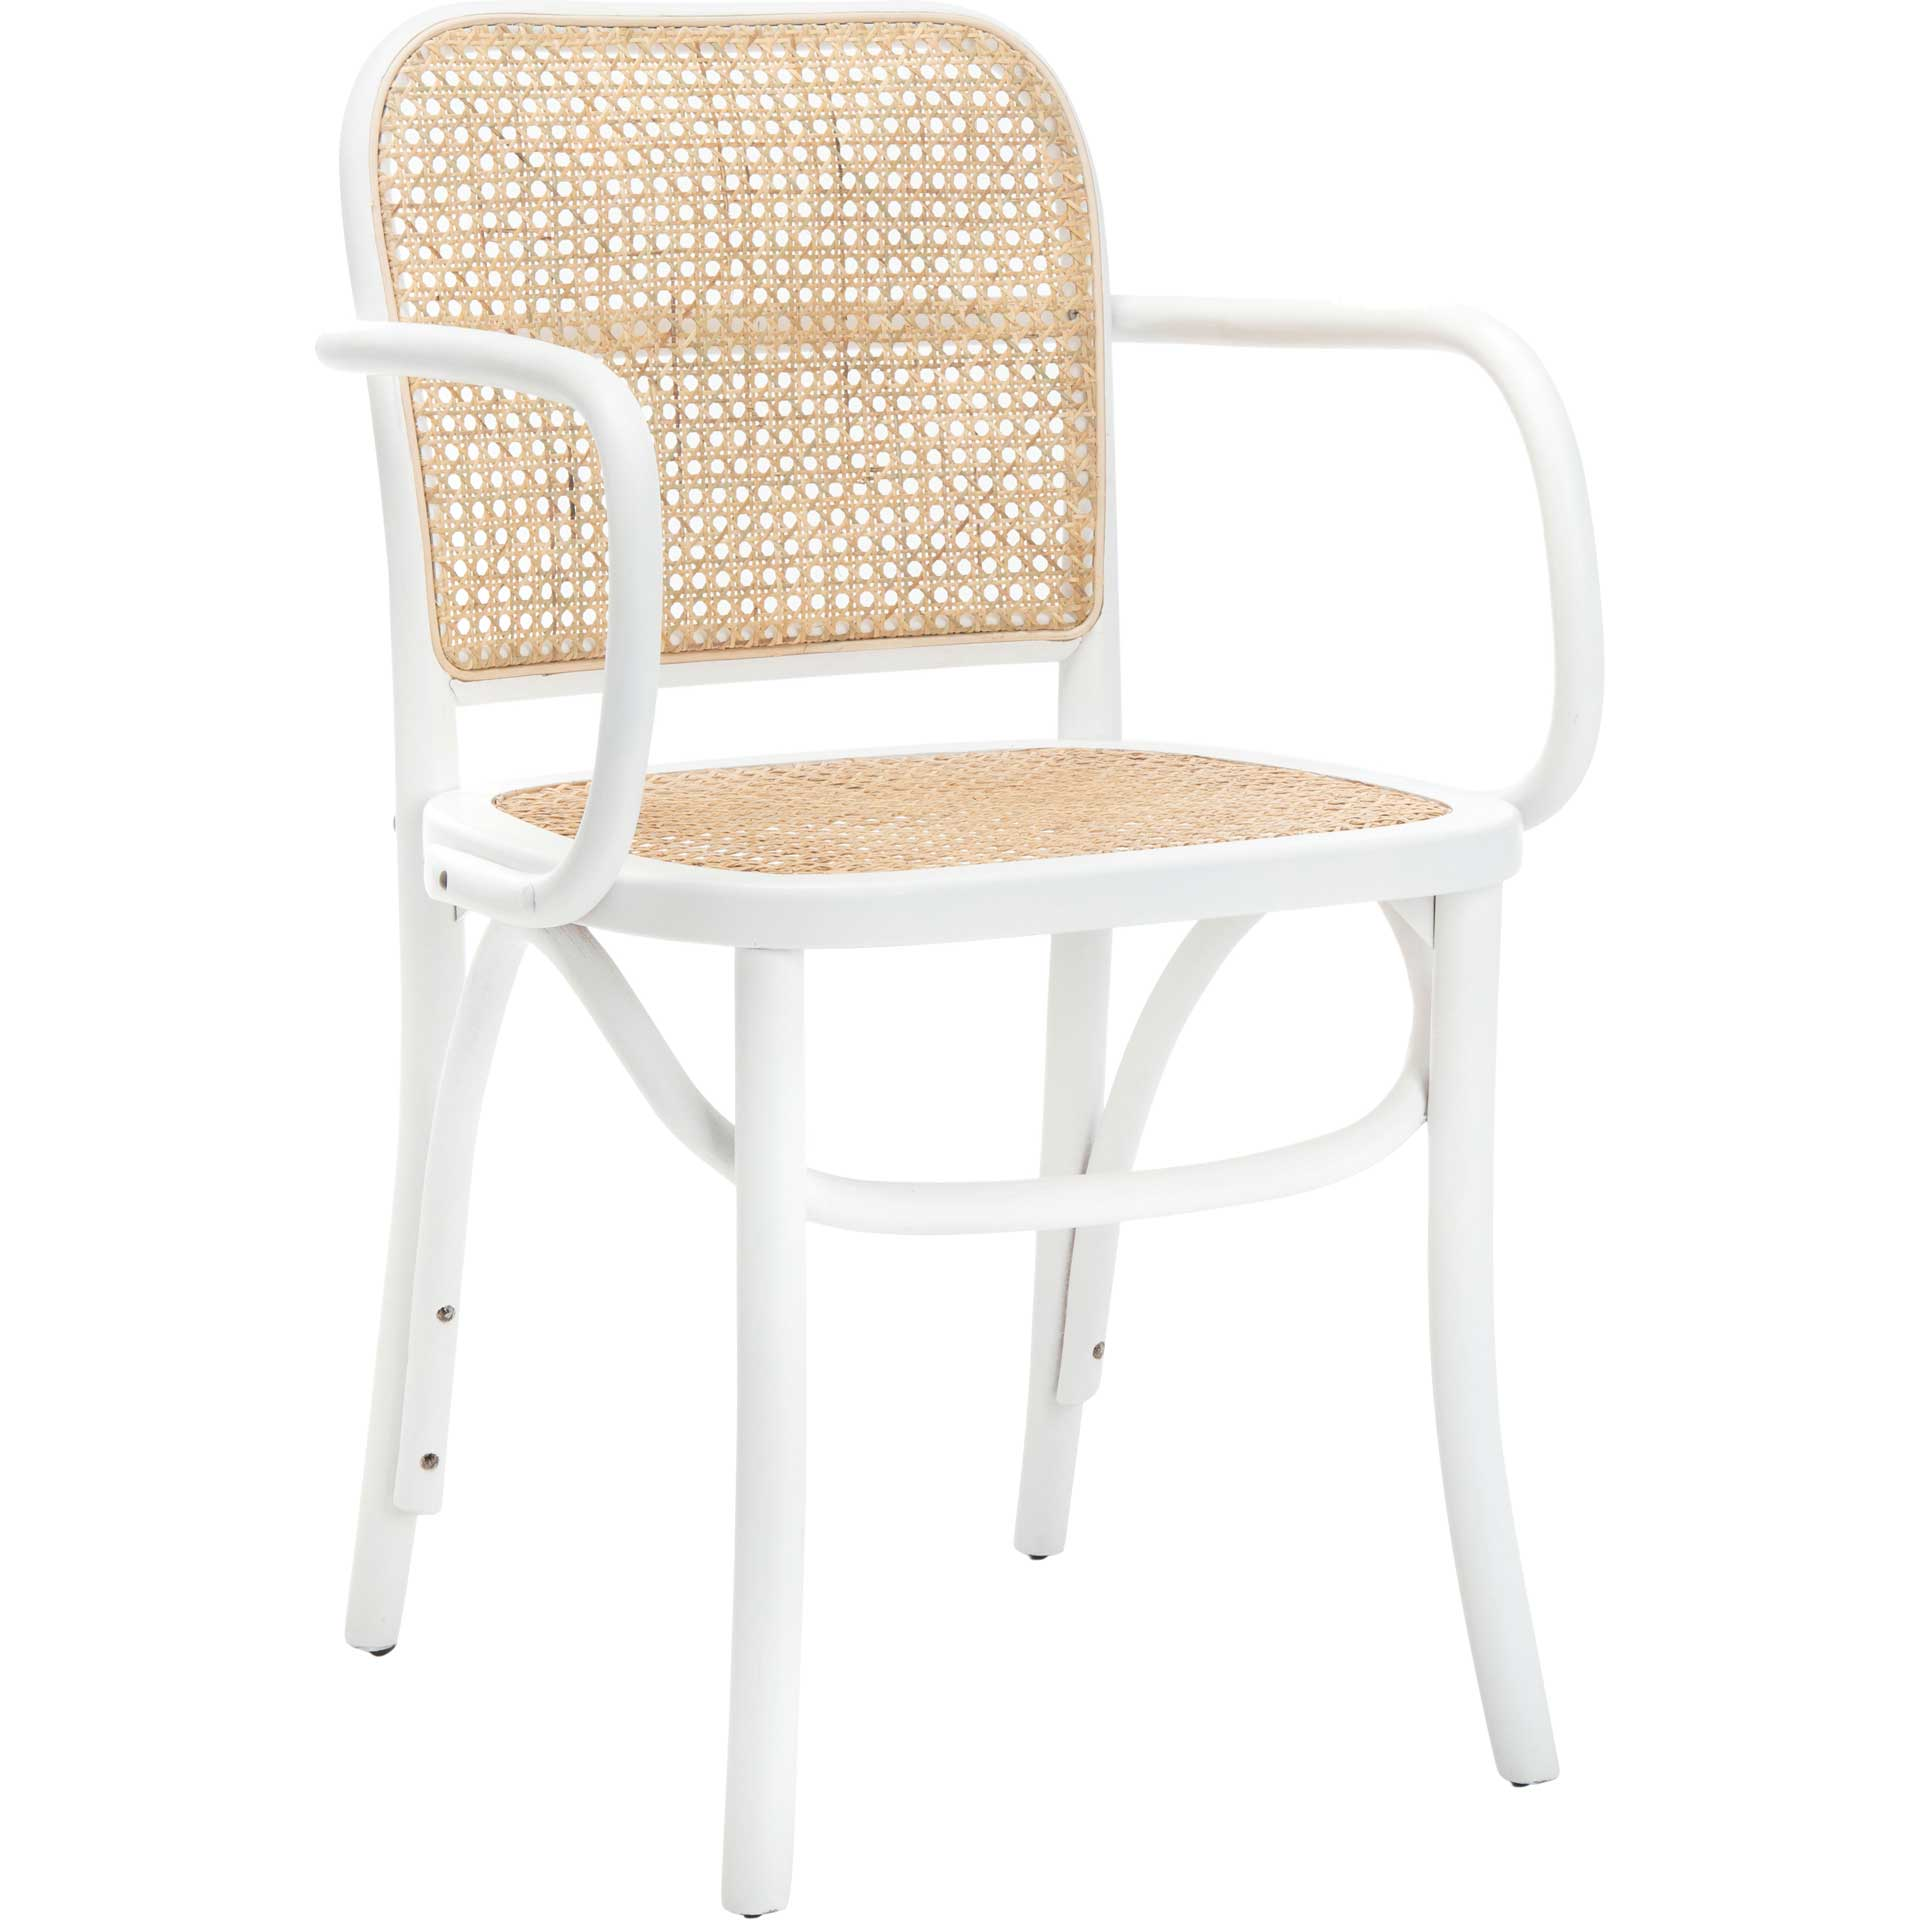 Keanu Cane Dining Chair White/Natural